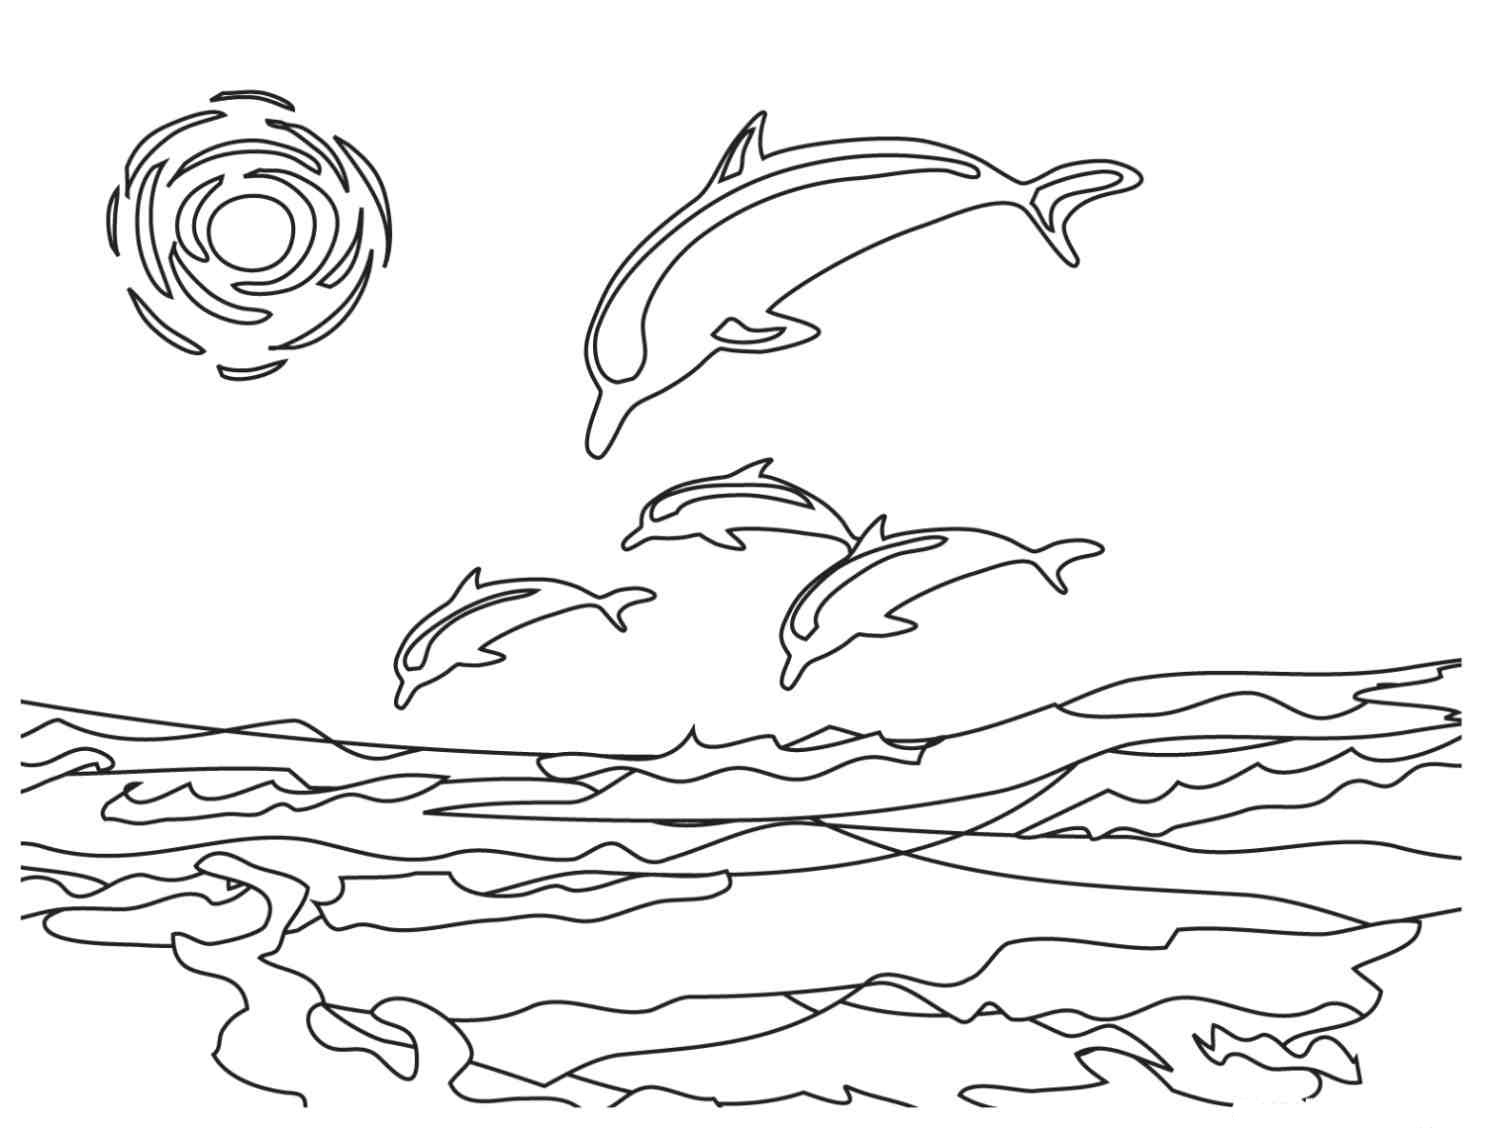 coloring pages of dolphins free printable dolphin coloring pages for kids coloring pages dolphins of